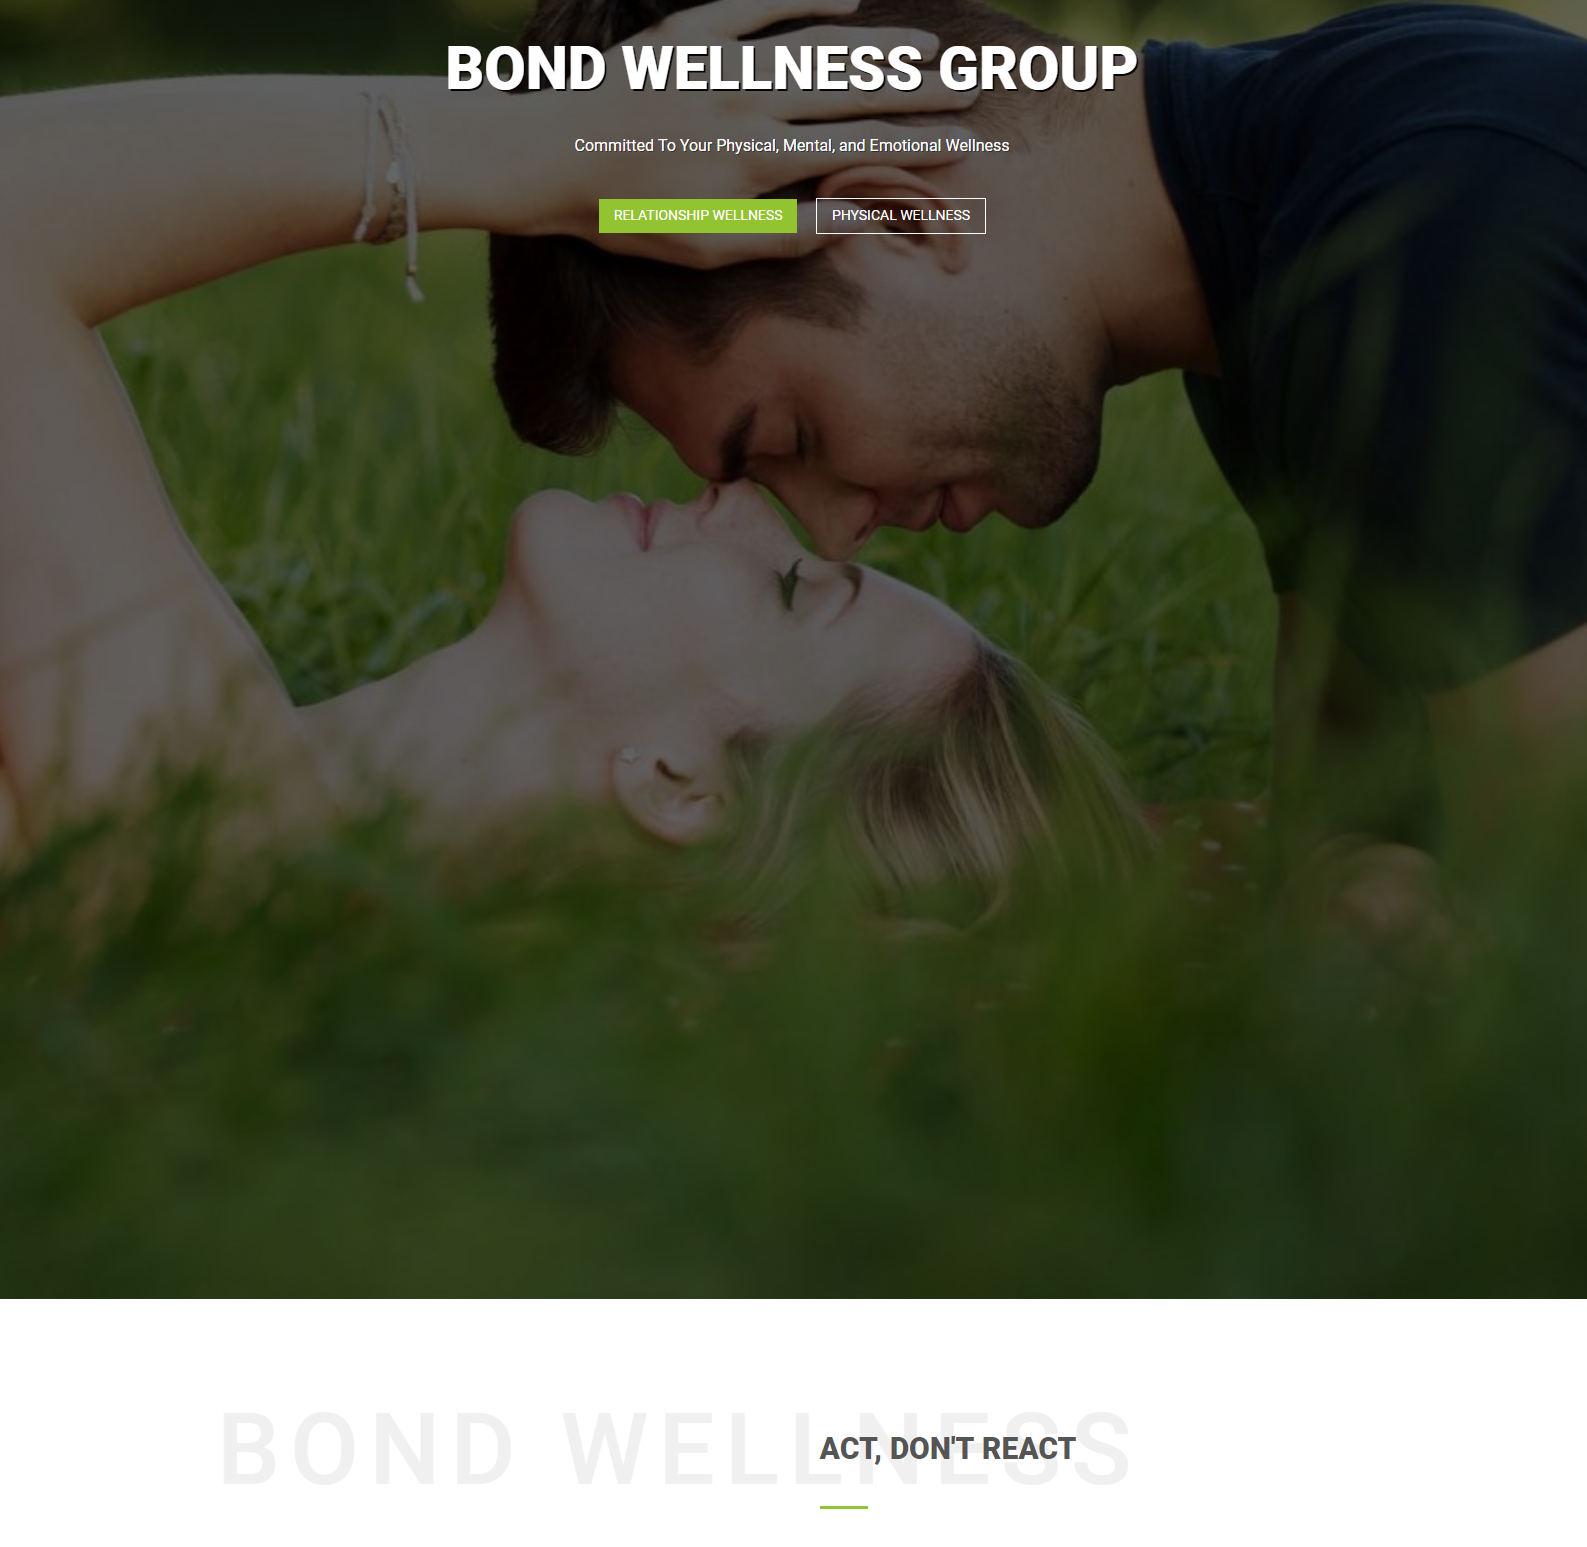 Bond Wellness Group Splash Page